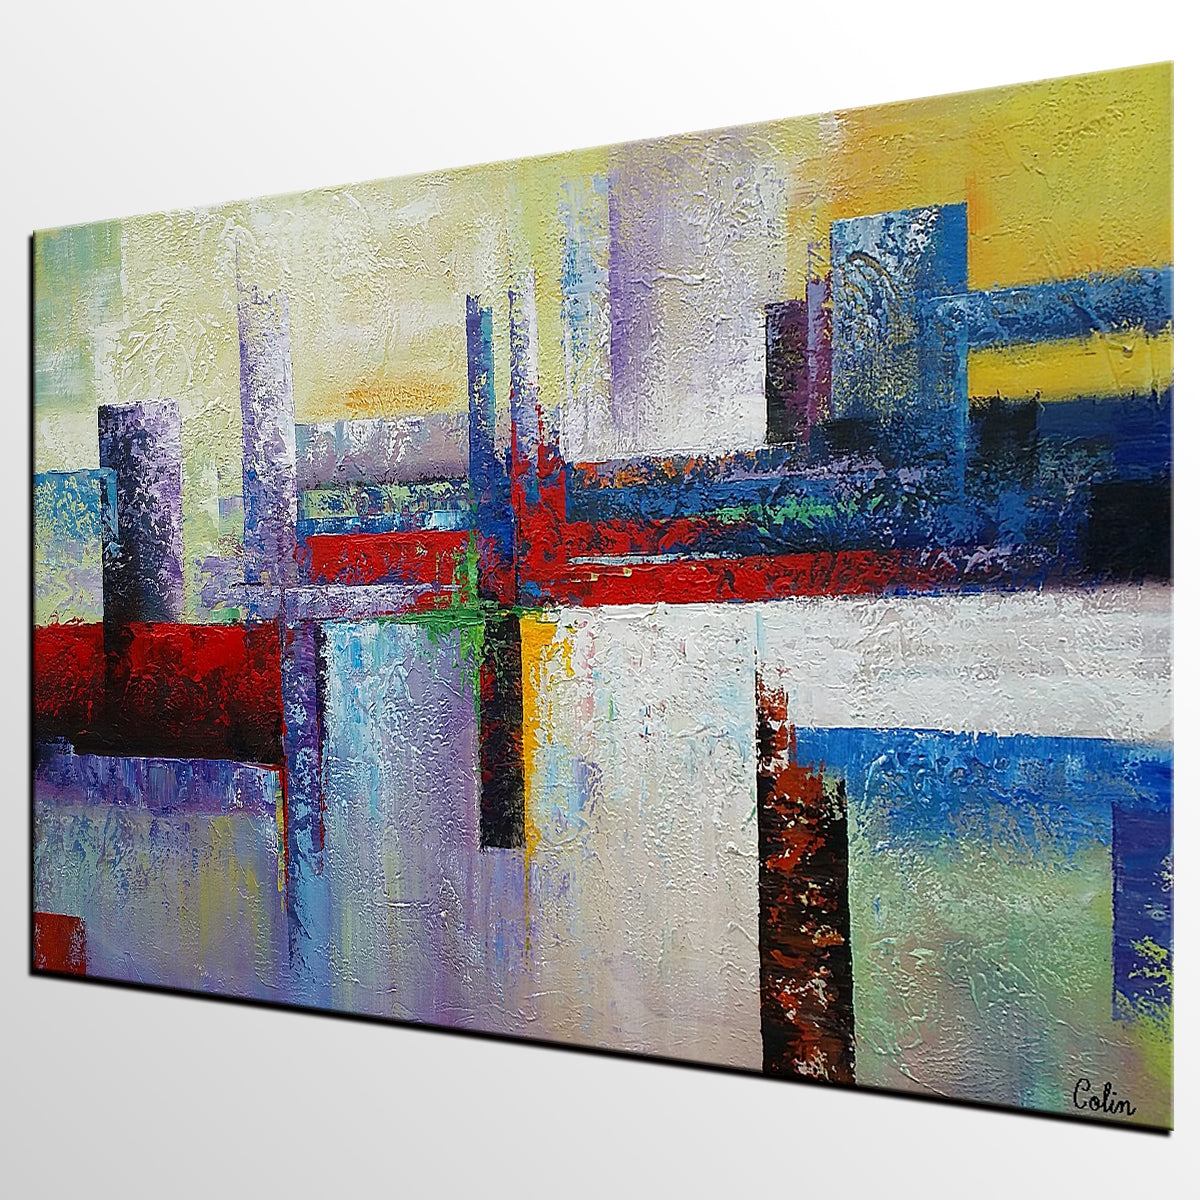 Wall Art Canvas Ready To Hang : Canvas painting large art wall original